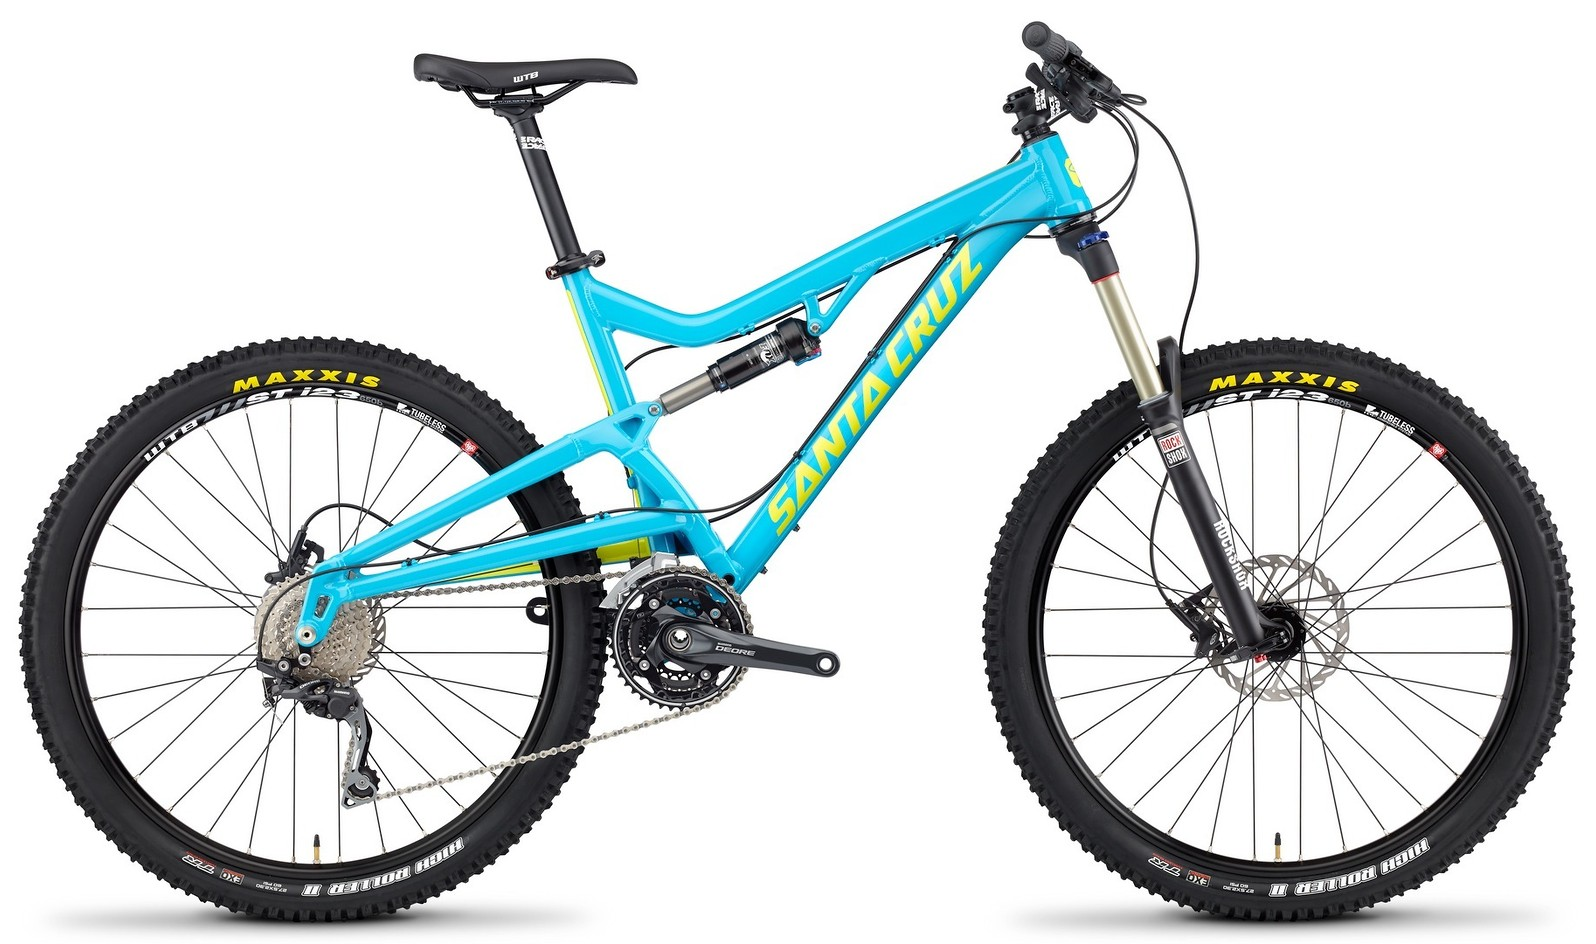 2014 Santa Cruz Heckler D Am 27 5 Bike Reviews Comparisons Specs Mountain Bikes Vital Mtb